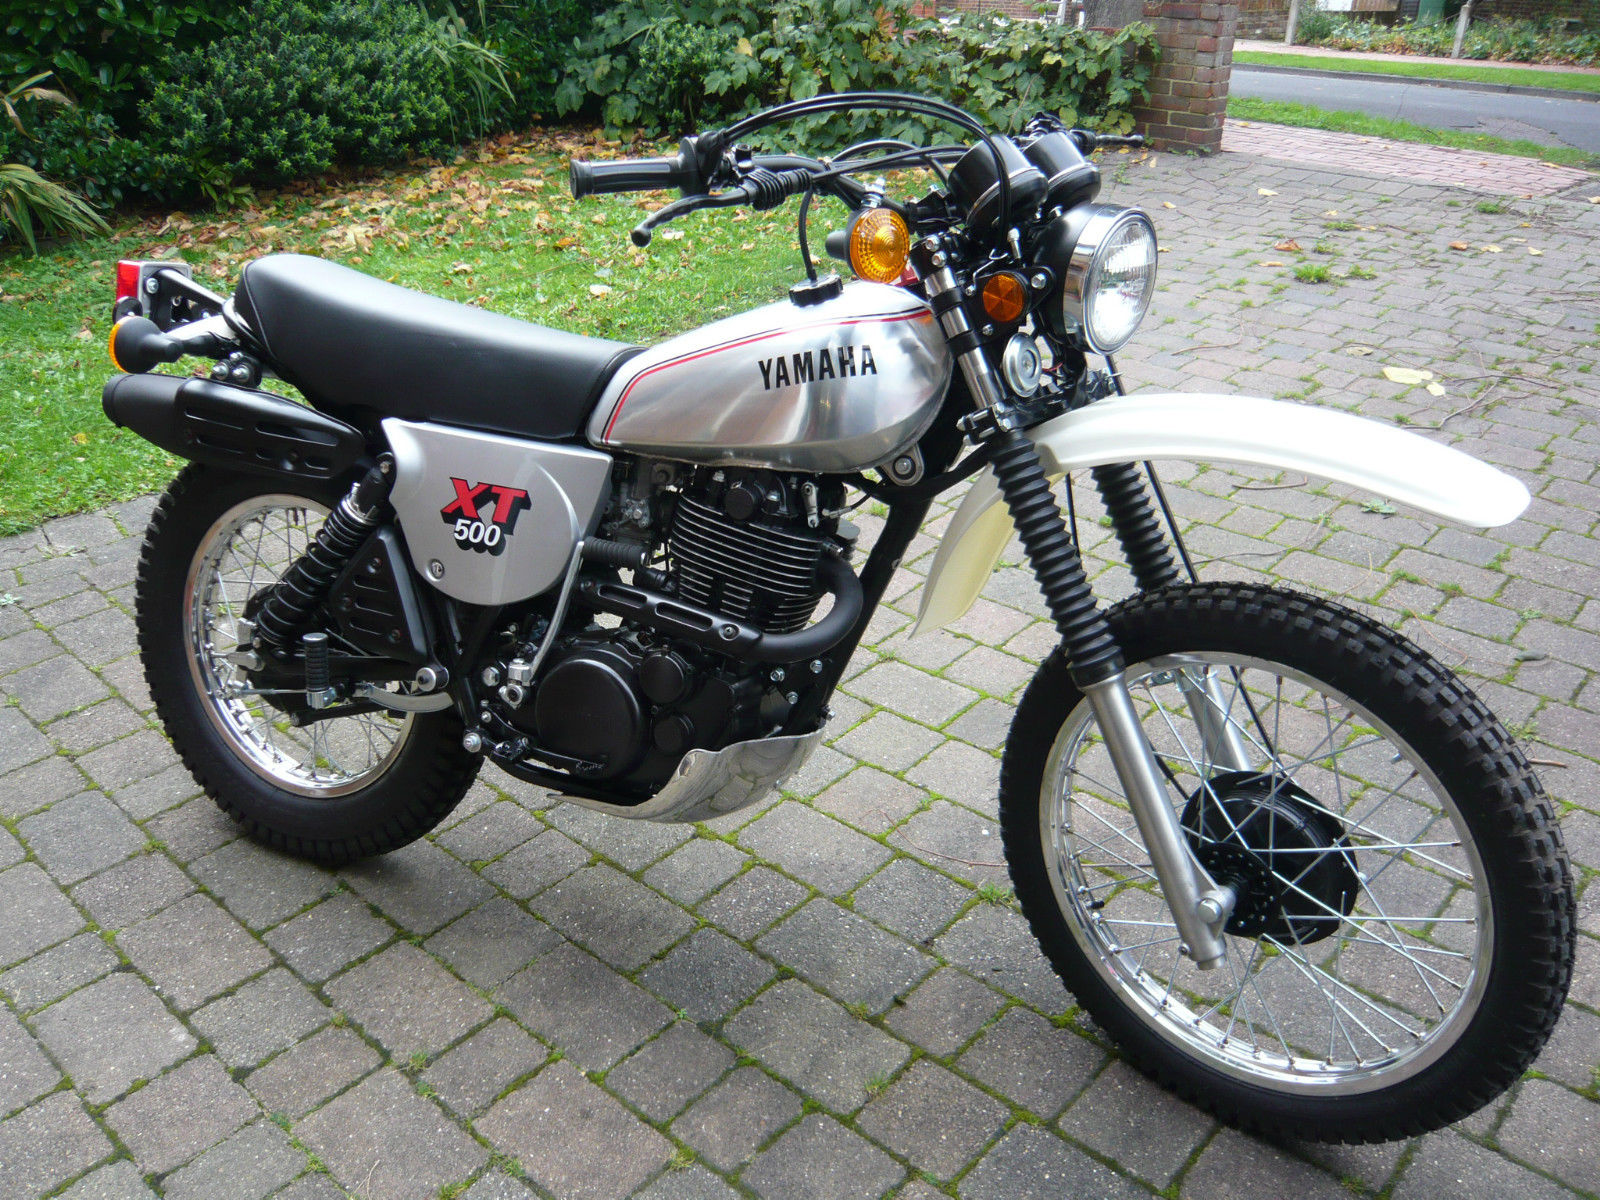 Restored Yamaha Xt500 1981 Photographs At Classic Bikes Restored Bikes Restored